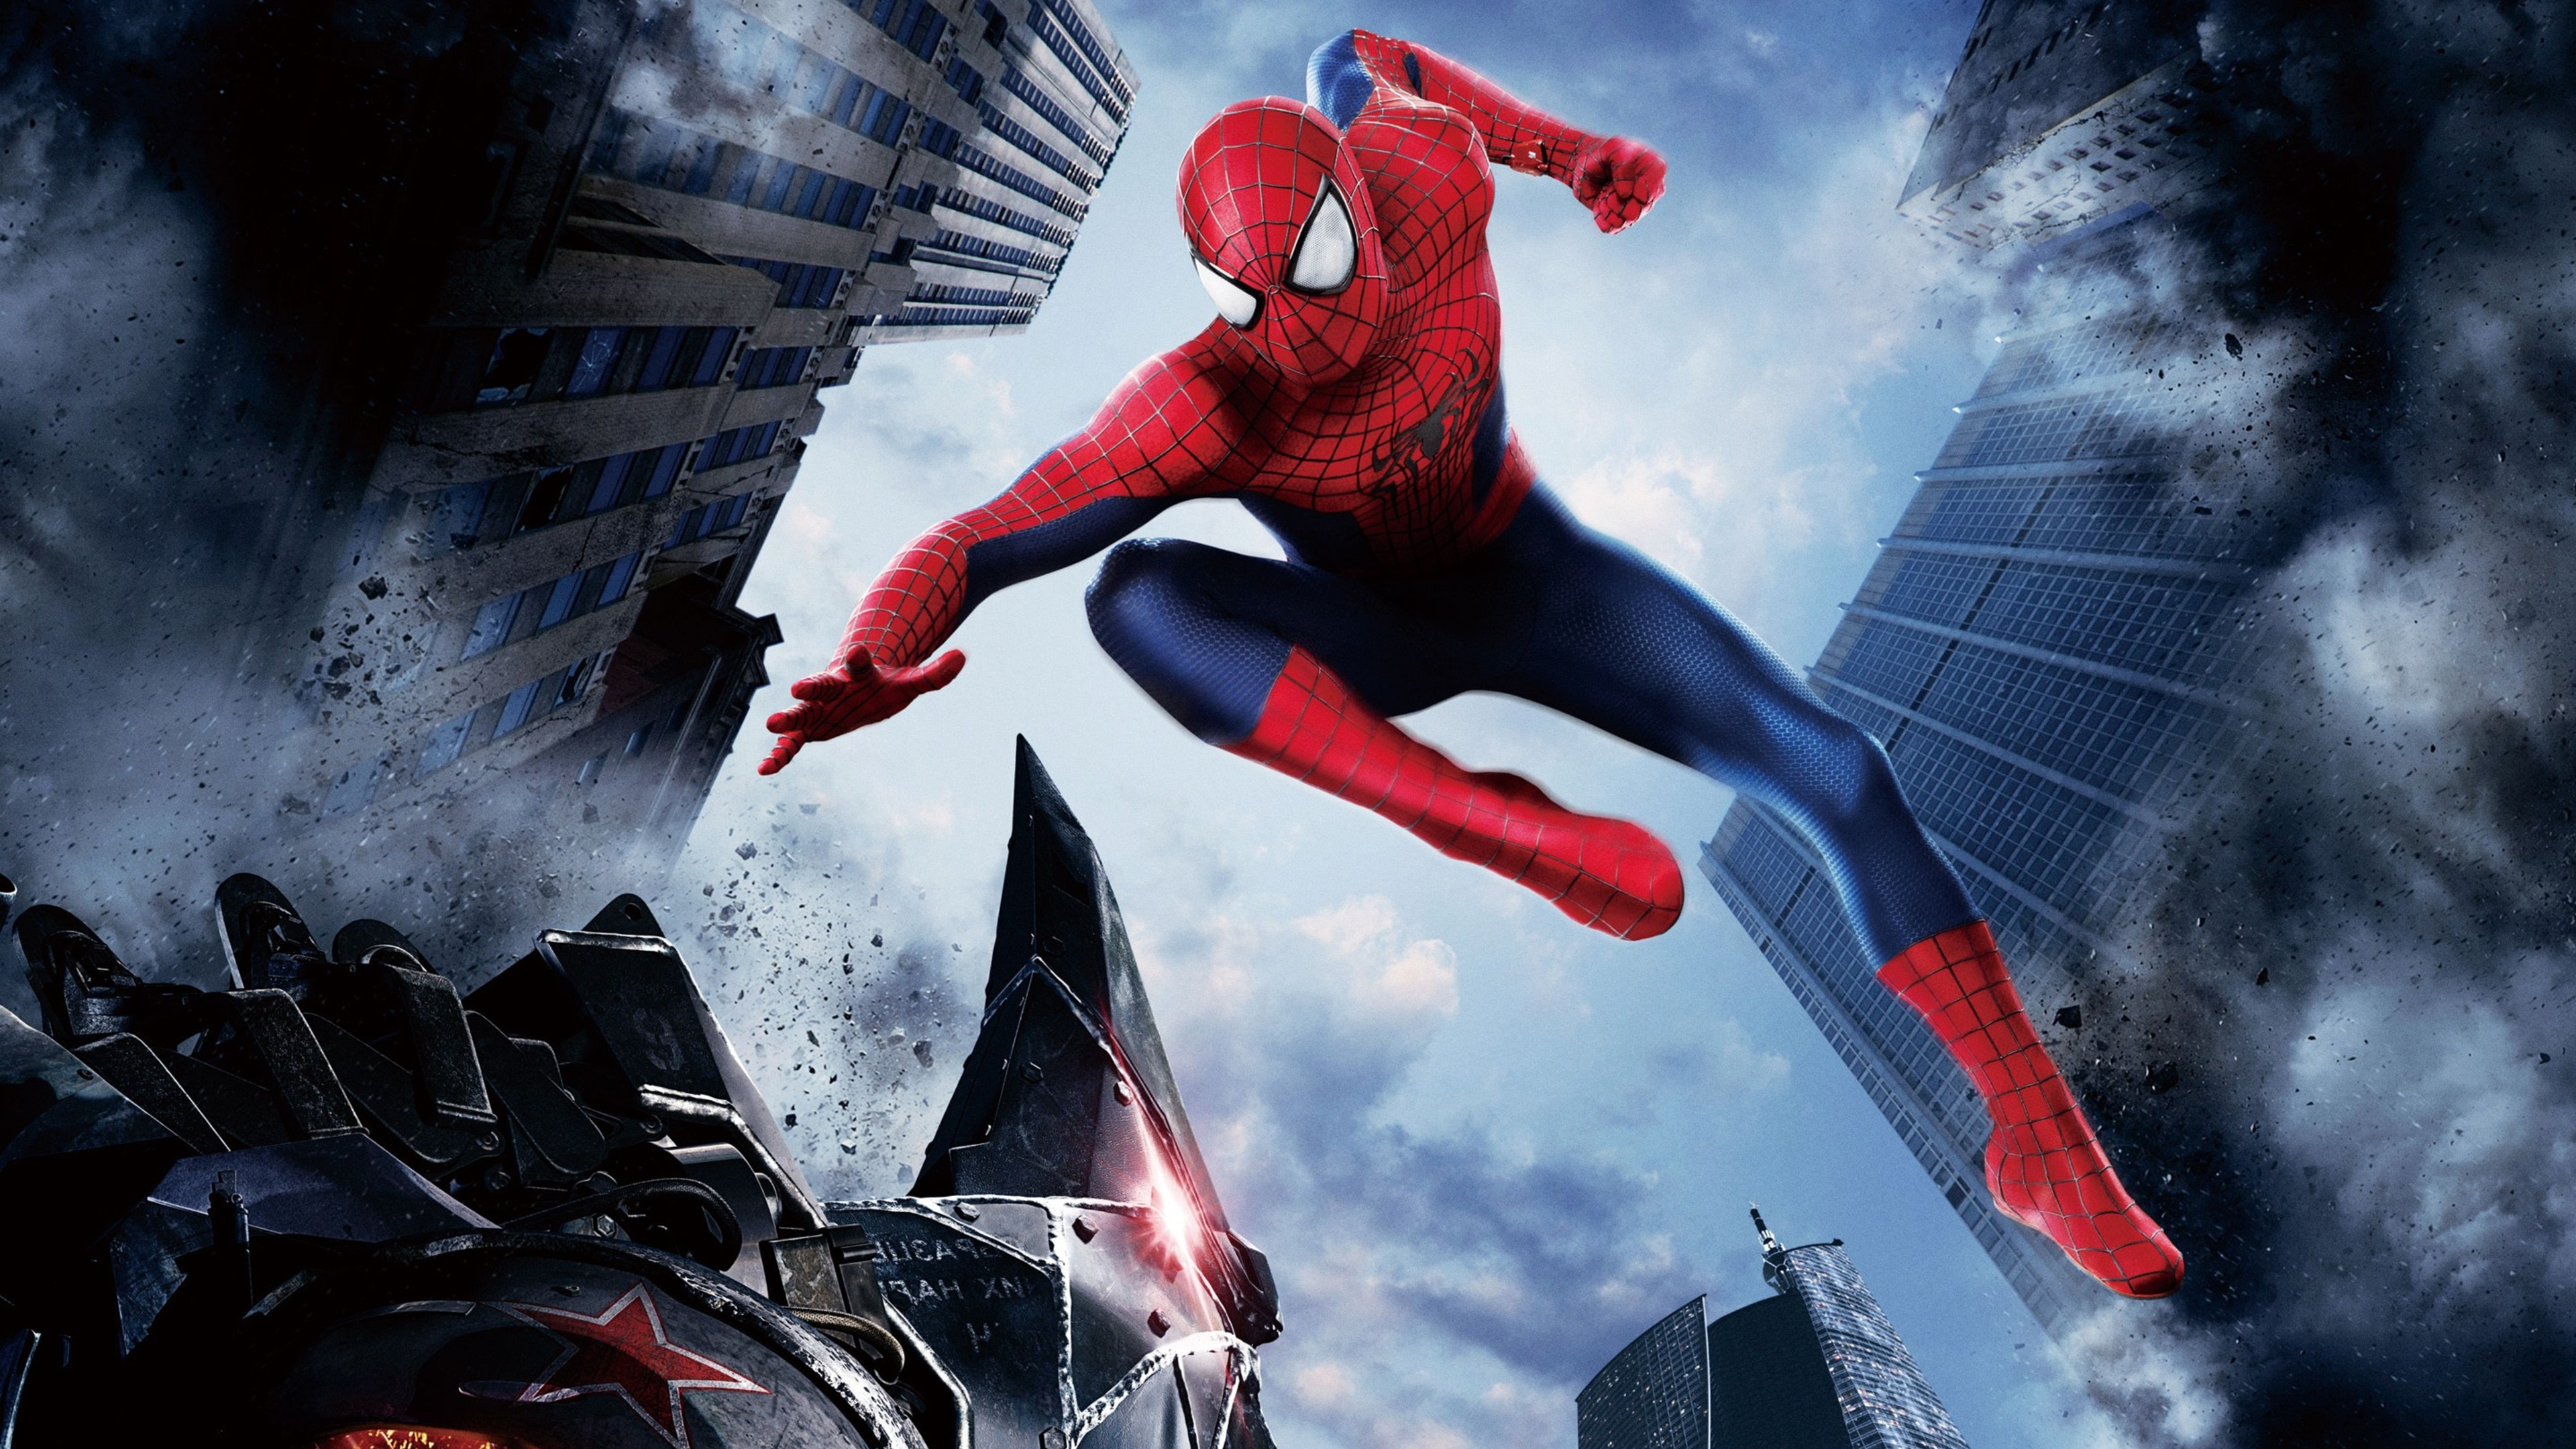 The Amazing Spider Man Hd Movies 4k Wallpapers Images